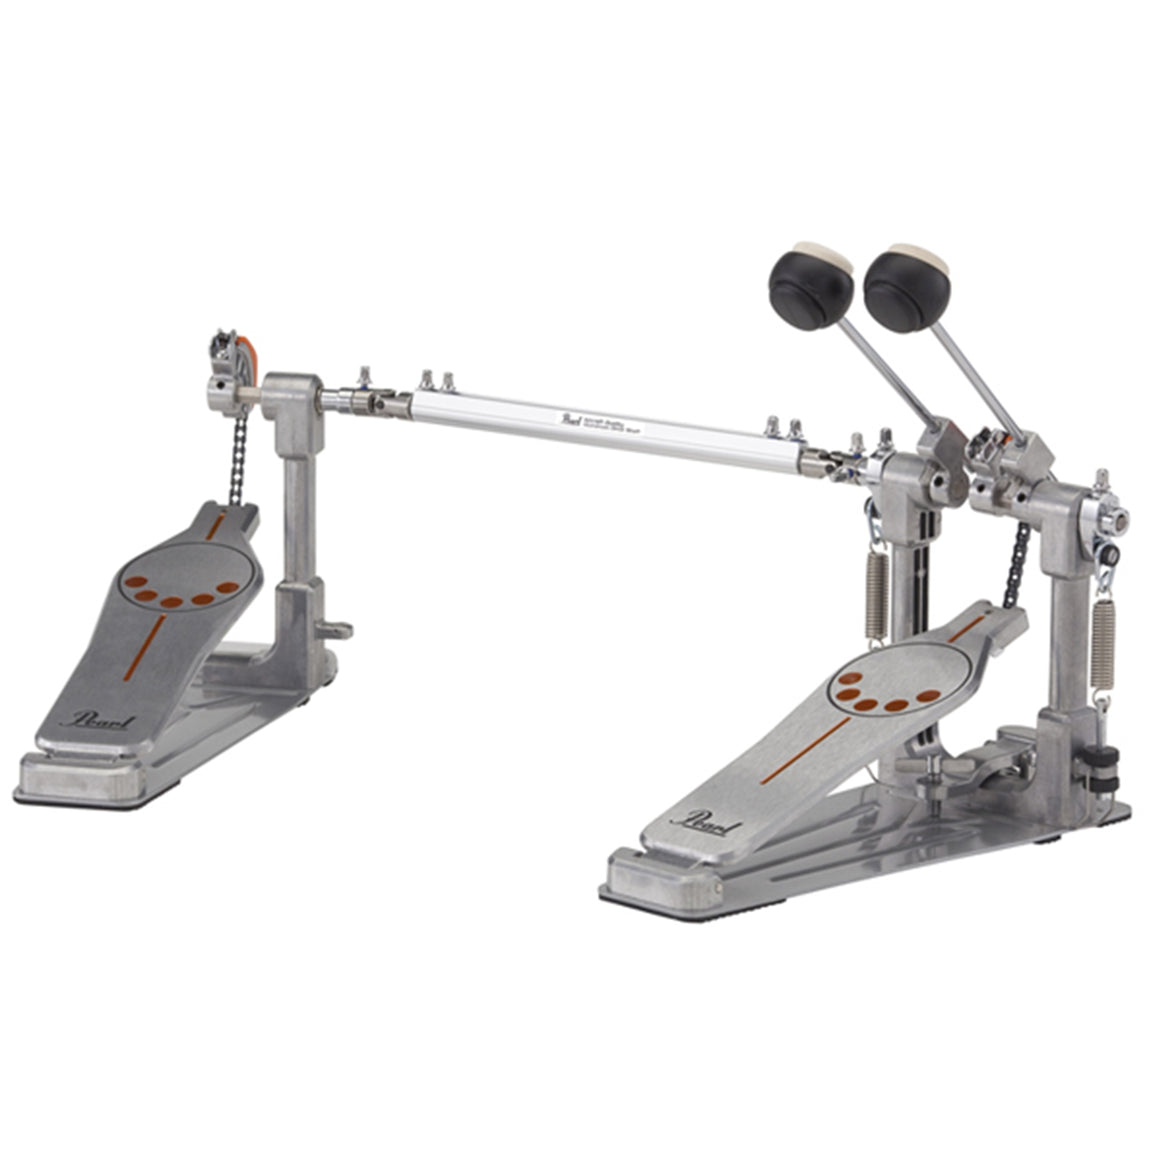 PEARL P932 Chain Drive Double Bass Drum Pedal